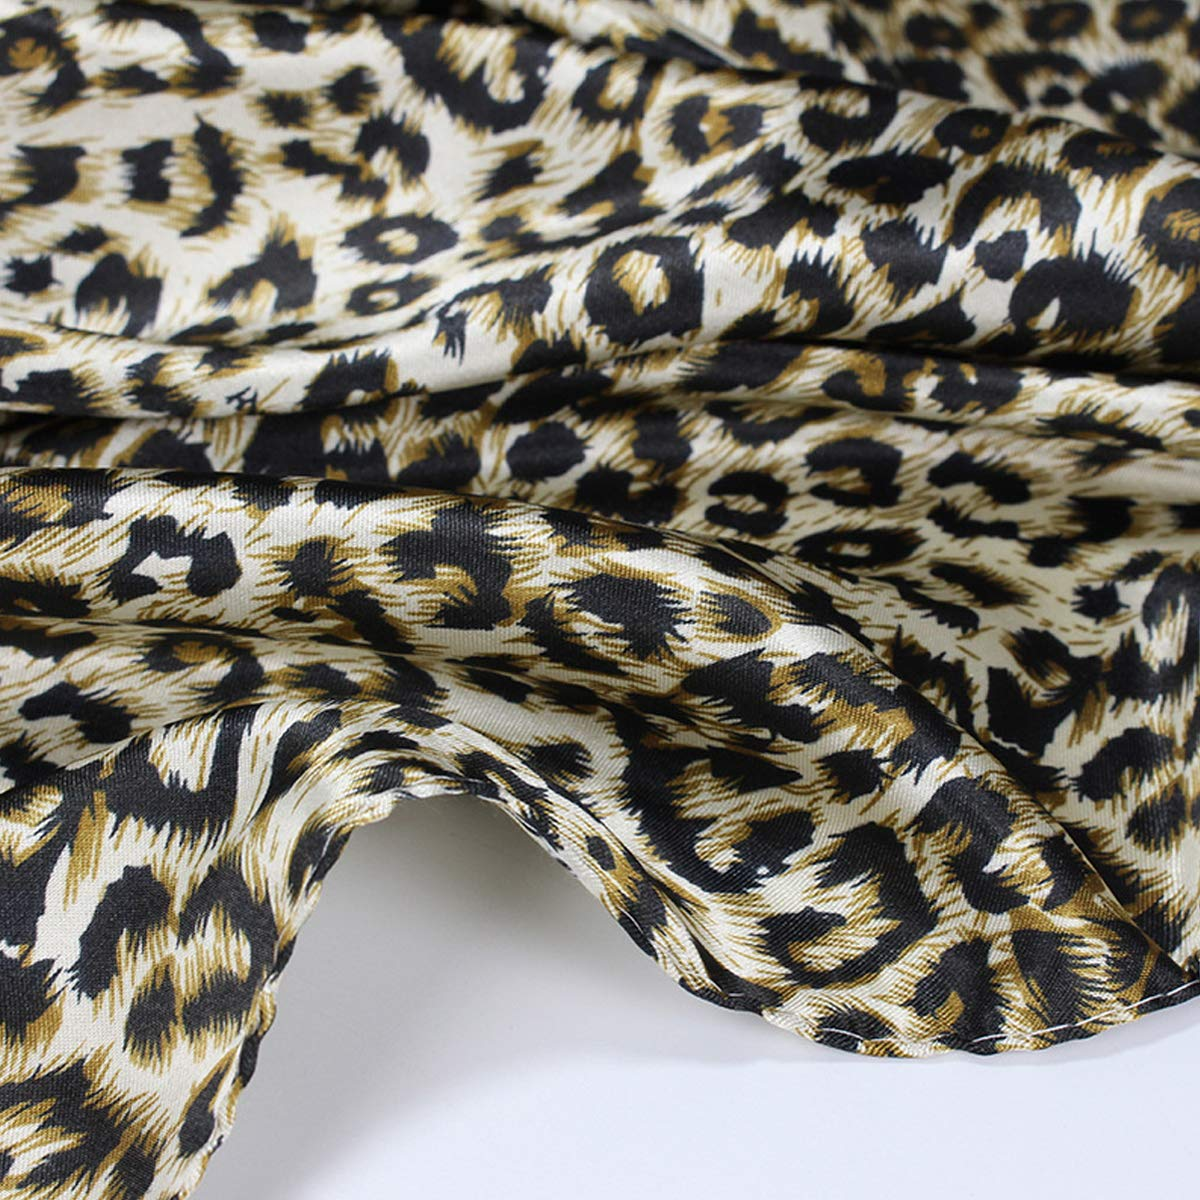 YMXHHB Silk Like Scarf Neck Scarves Women/'s Large Square Satin Hair Scarf 35 x 35 inches